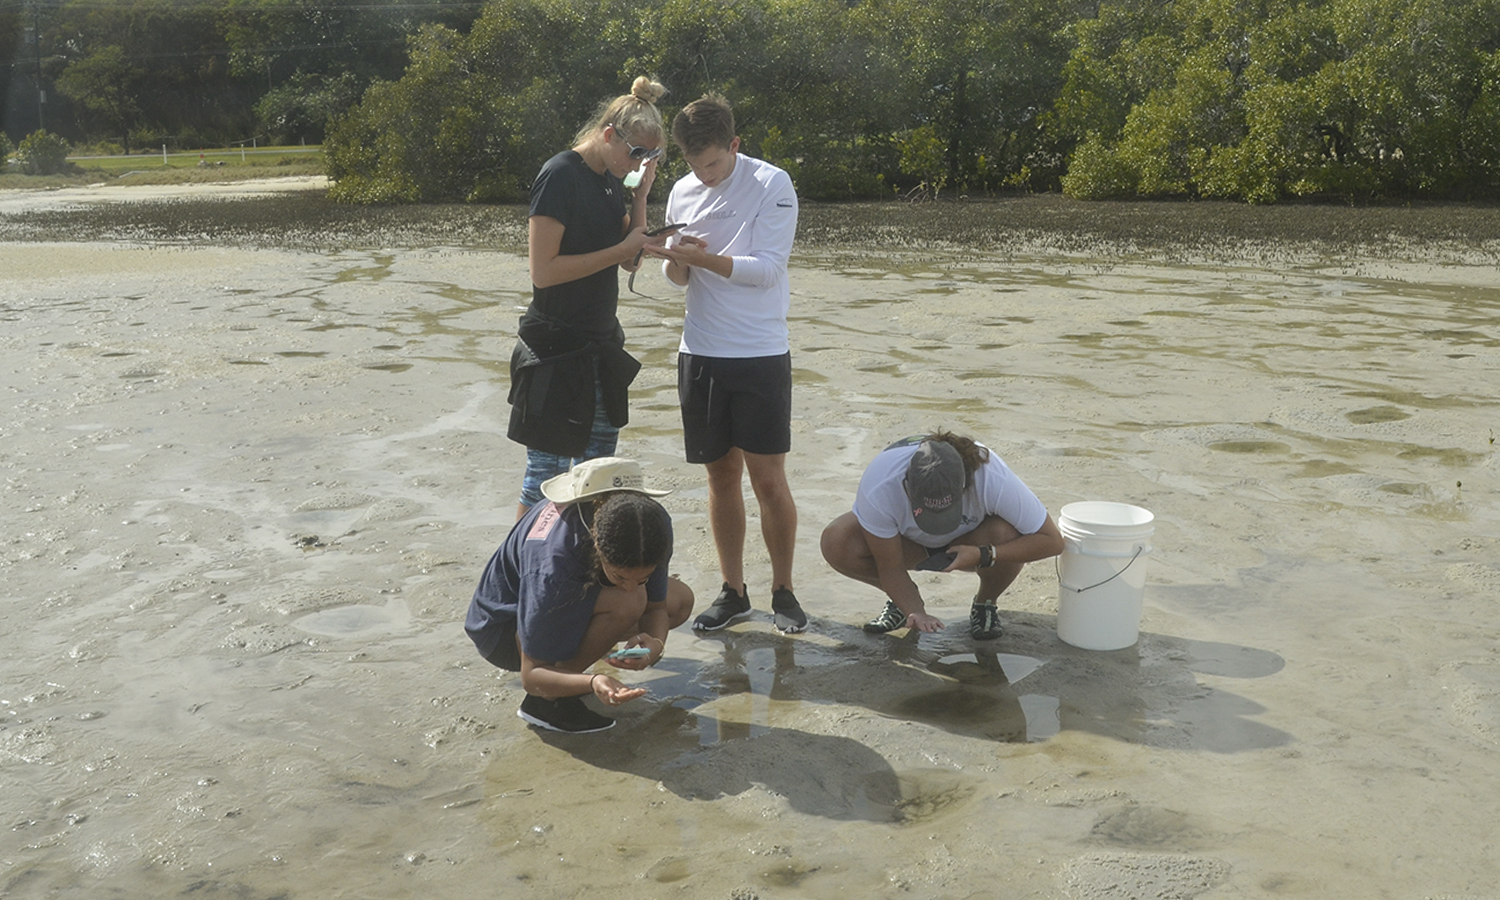 Students studying abroad in Australia with Associate Professor of Environmental Studies Darrin Magee and Professor of Biology Mark Deutschlander collect samples from tide pools.